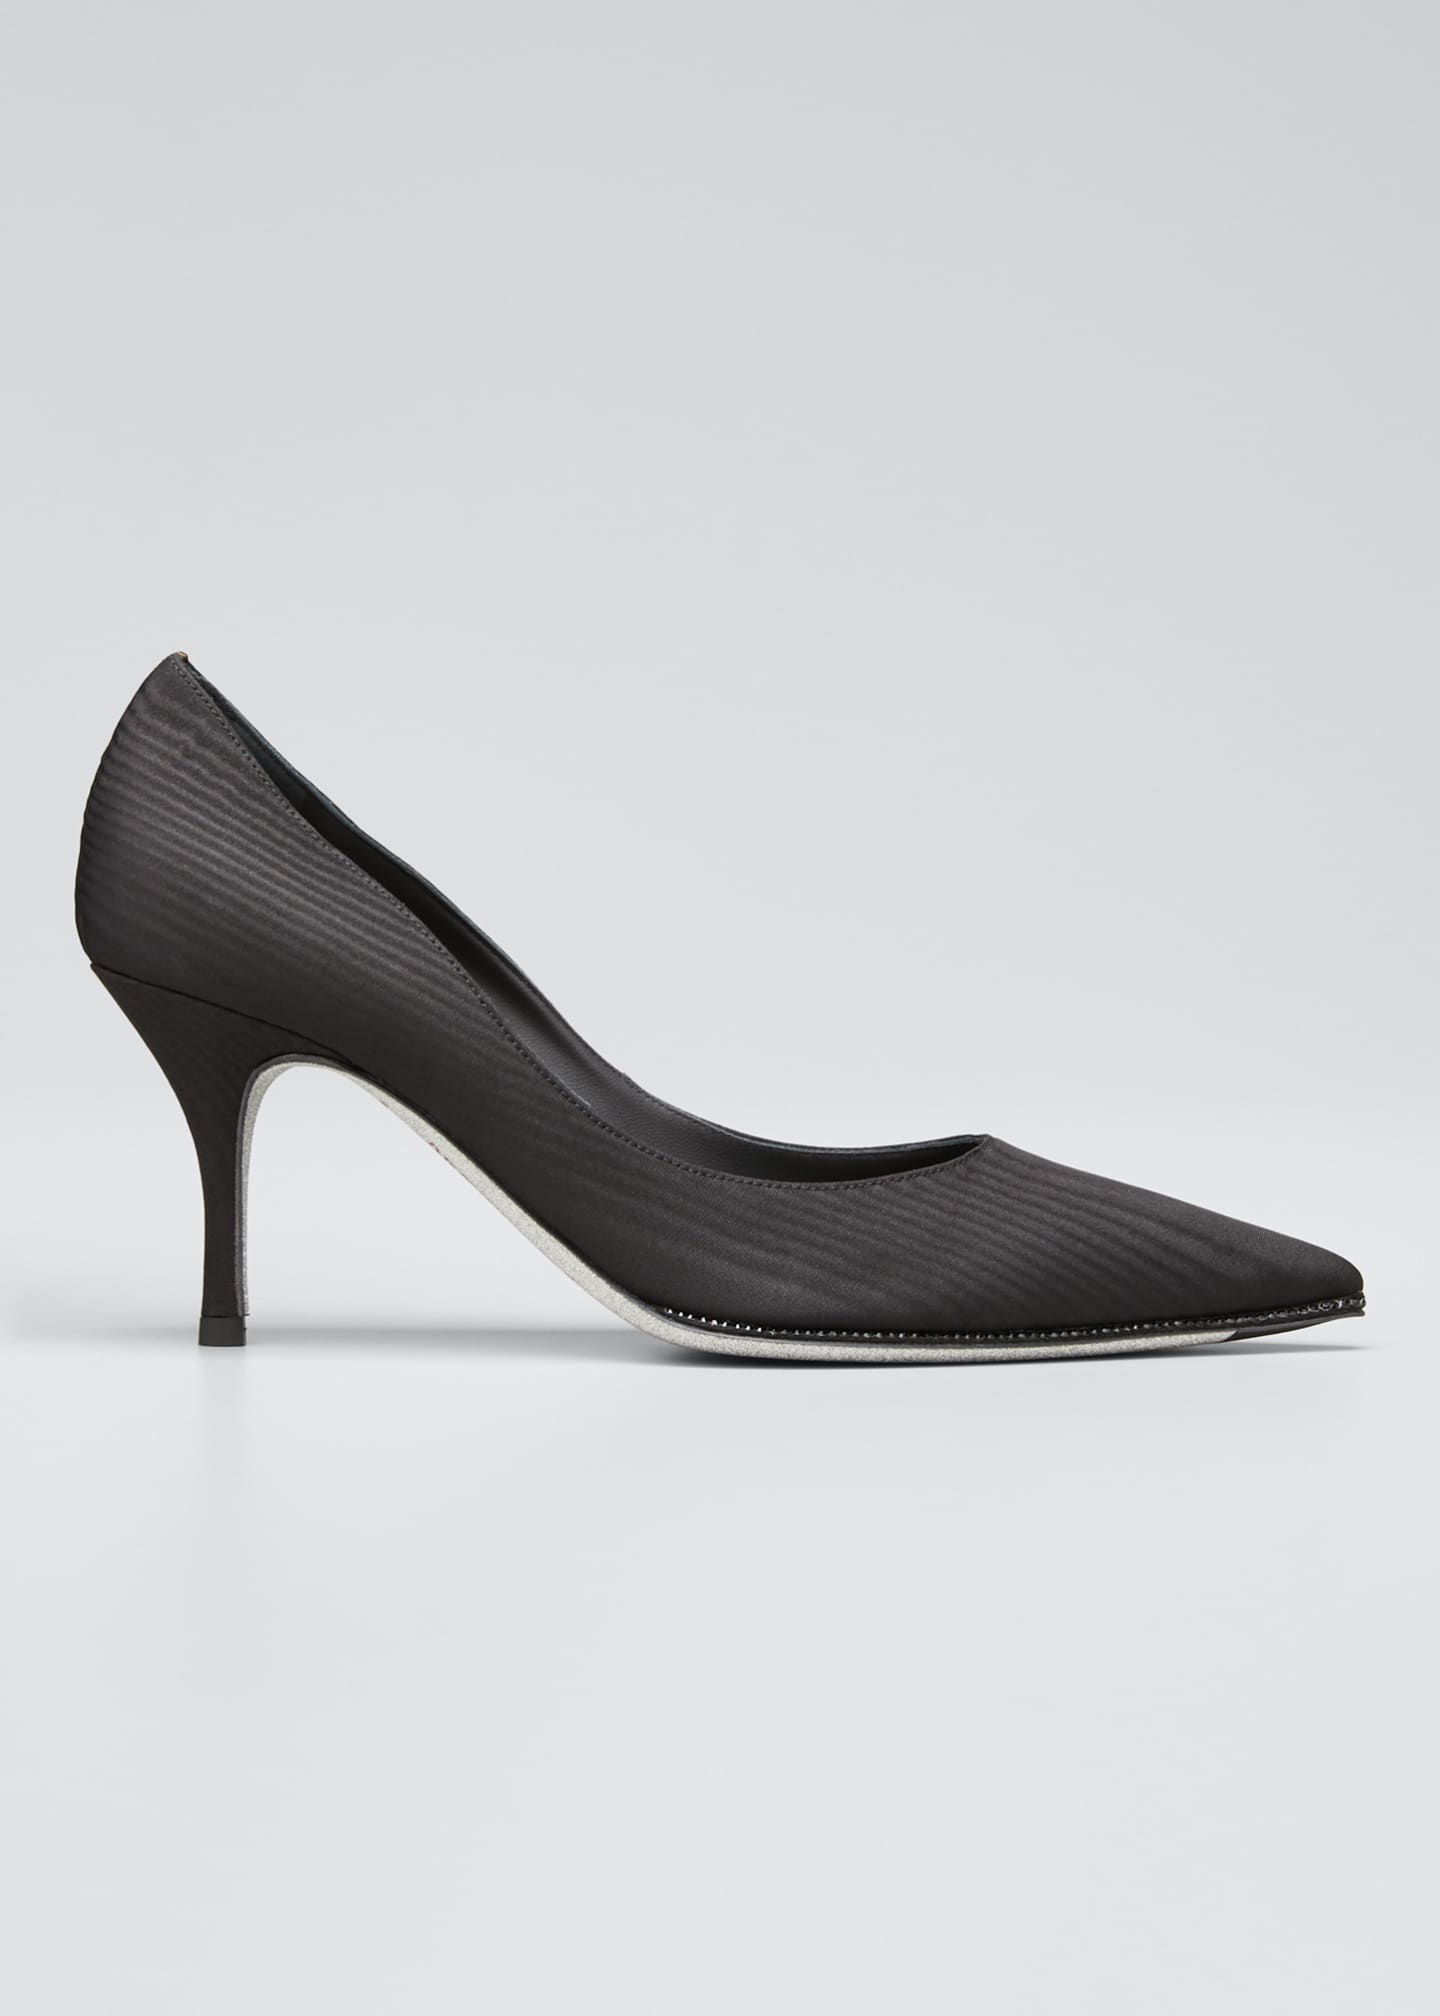 Rene Caovilla Moire Pumps with Crystal Detail